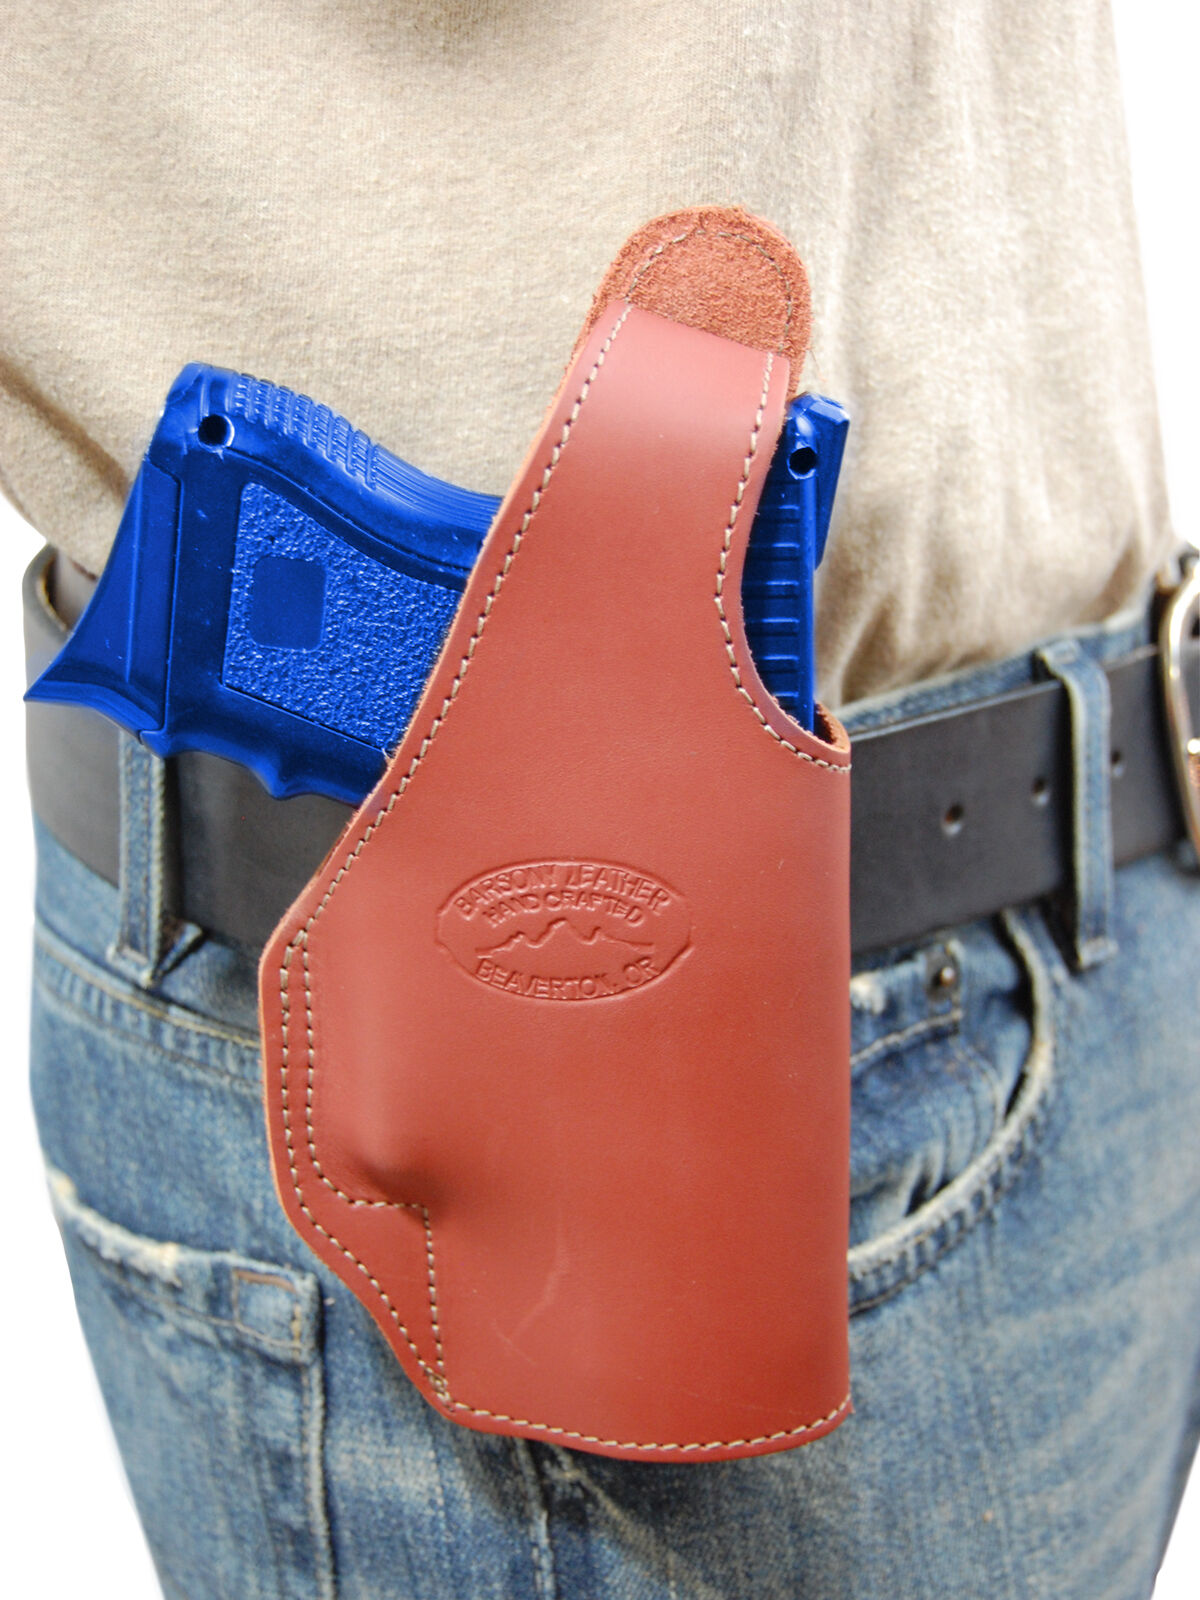 New Barsony Burgundy Leder OWB Holster Walther Compact, Sub-Compact 9mm 40 45